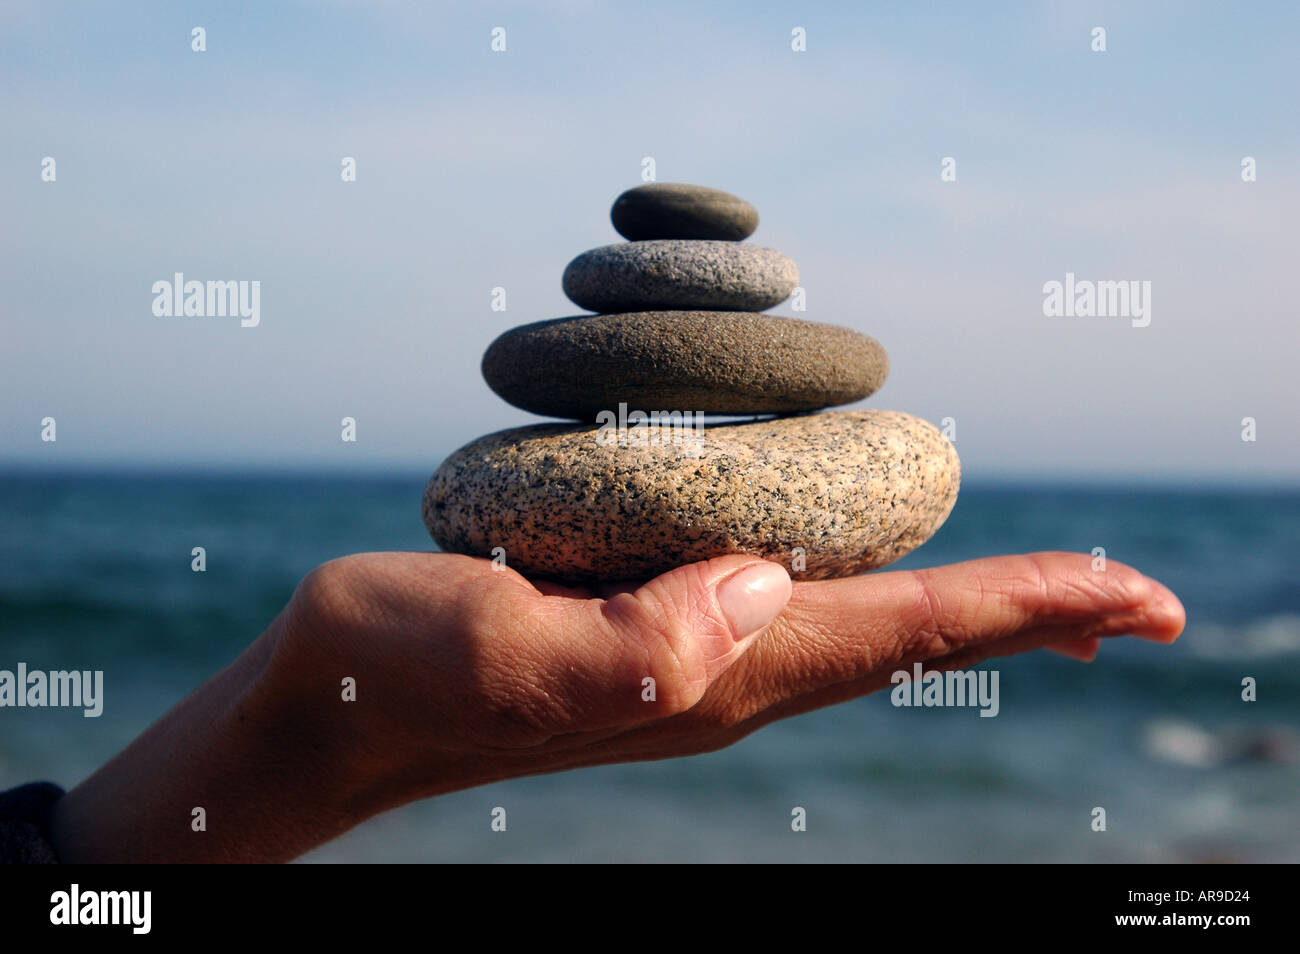 Relax yoga Hand with pile of rocks design and neatness - Stock Image